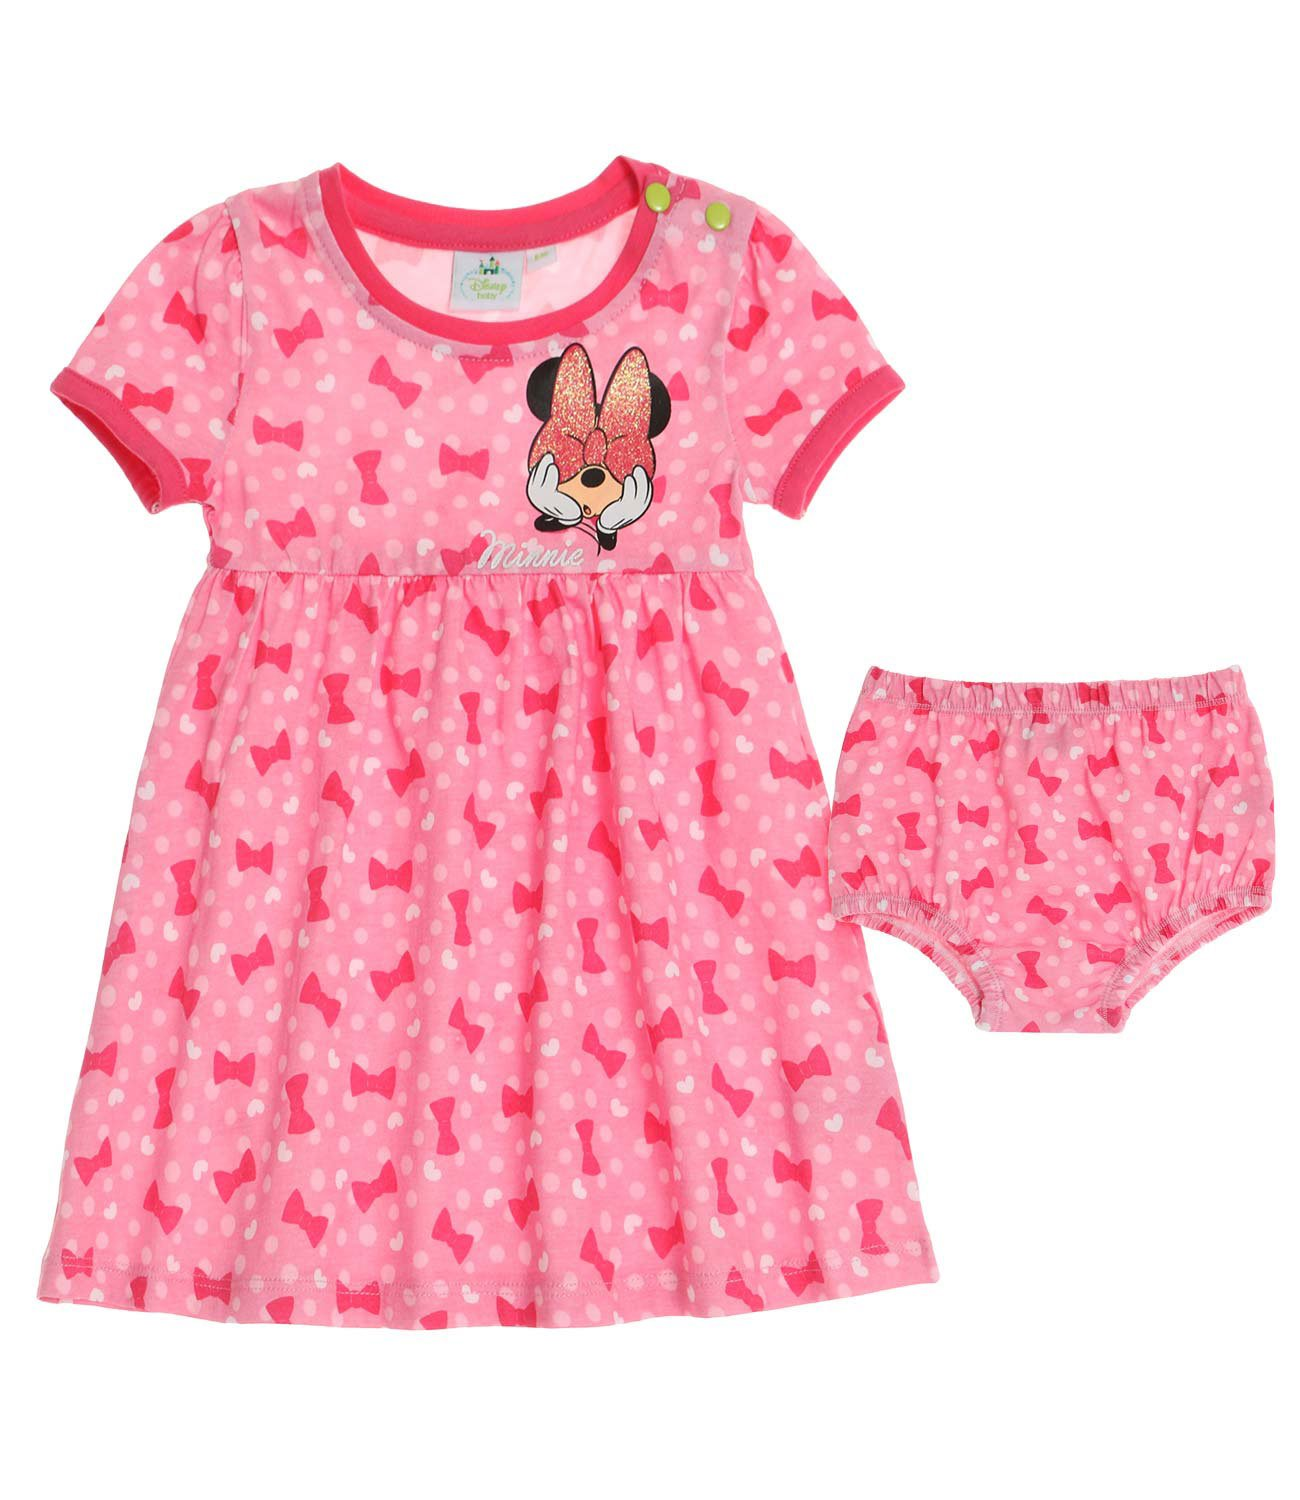 Disney Minnie Babies Dress & Brief 2016 Collection - Fuchsia